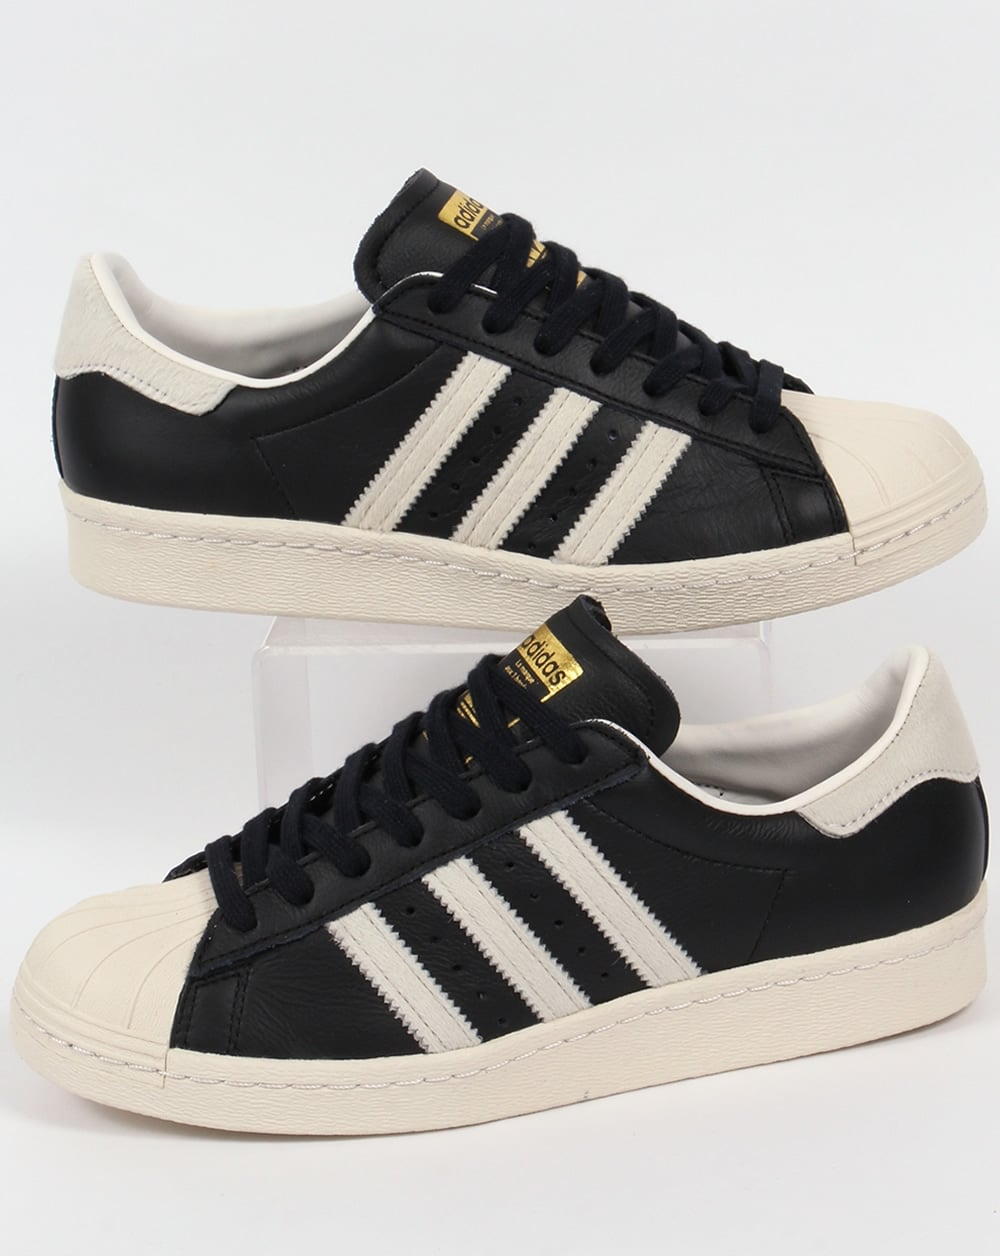 Adidas Superstar 80s Black